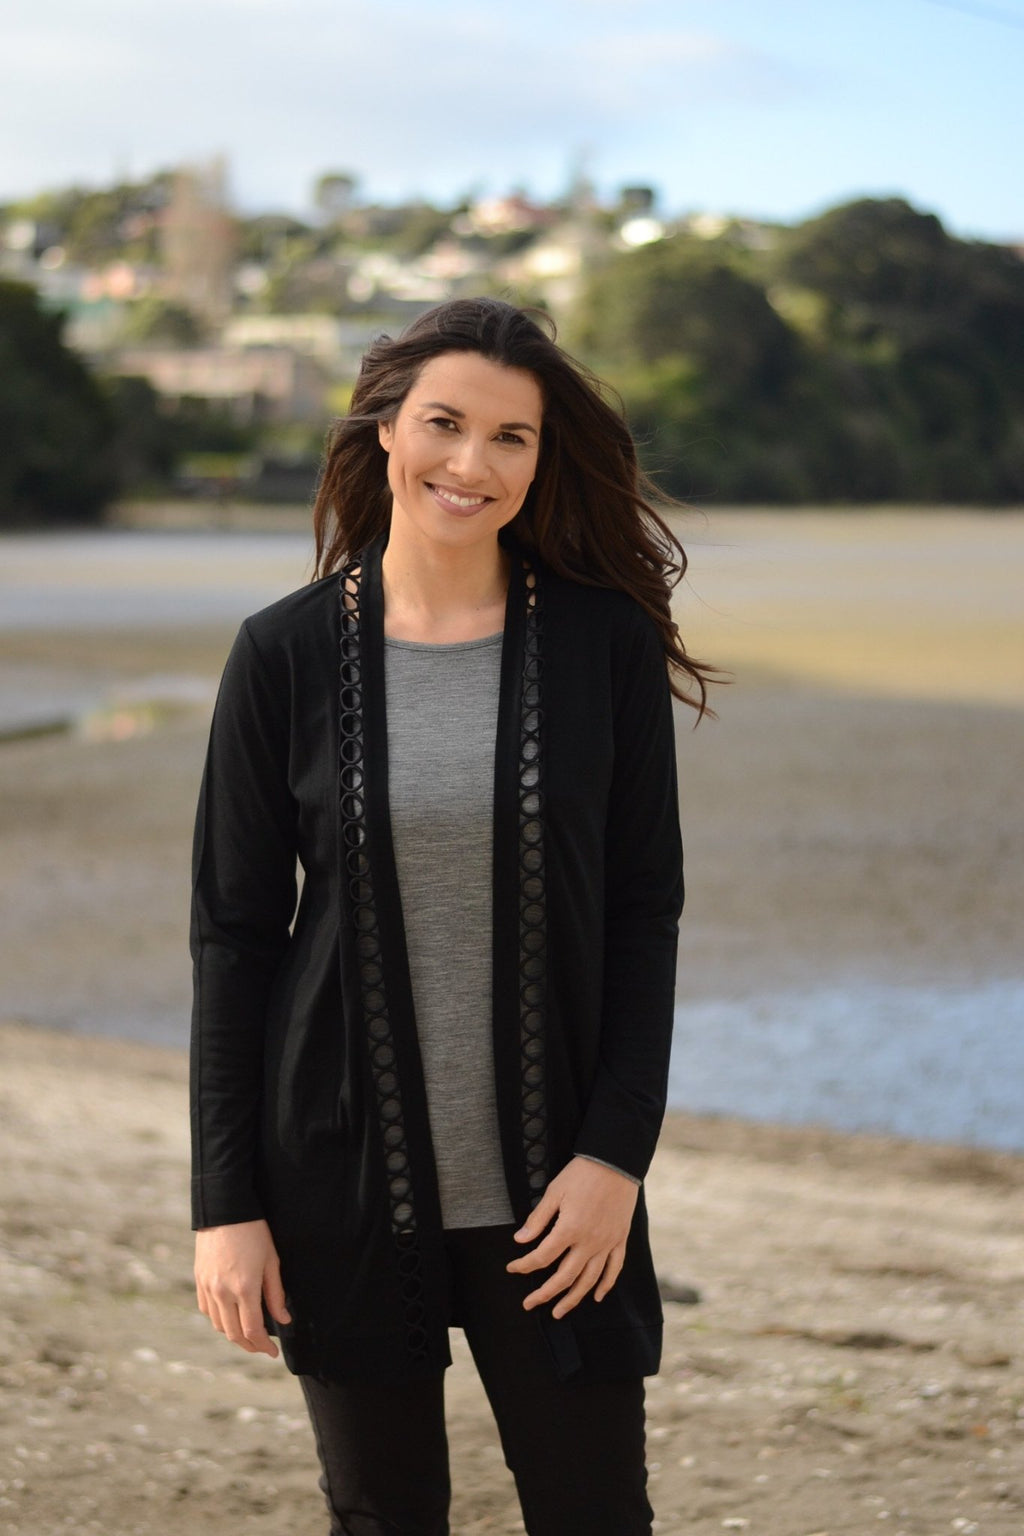 CIRCLE TRIM CARDIGAN - No image set - Ebony Boutique NZ